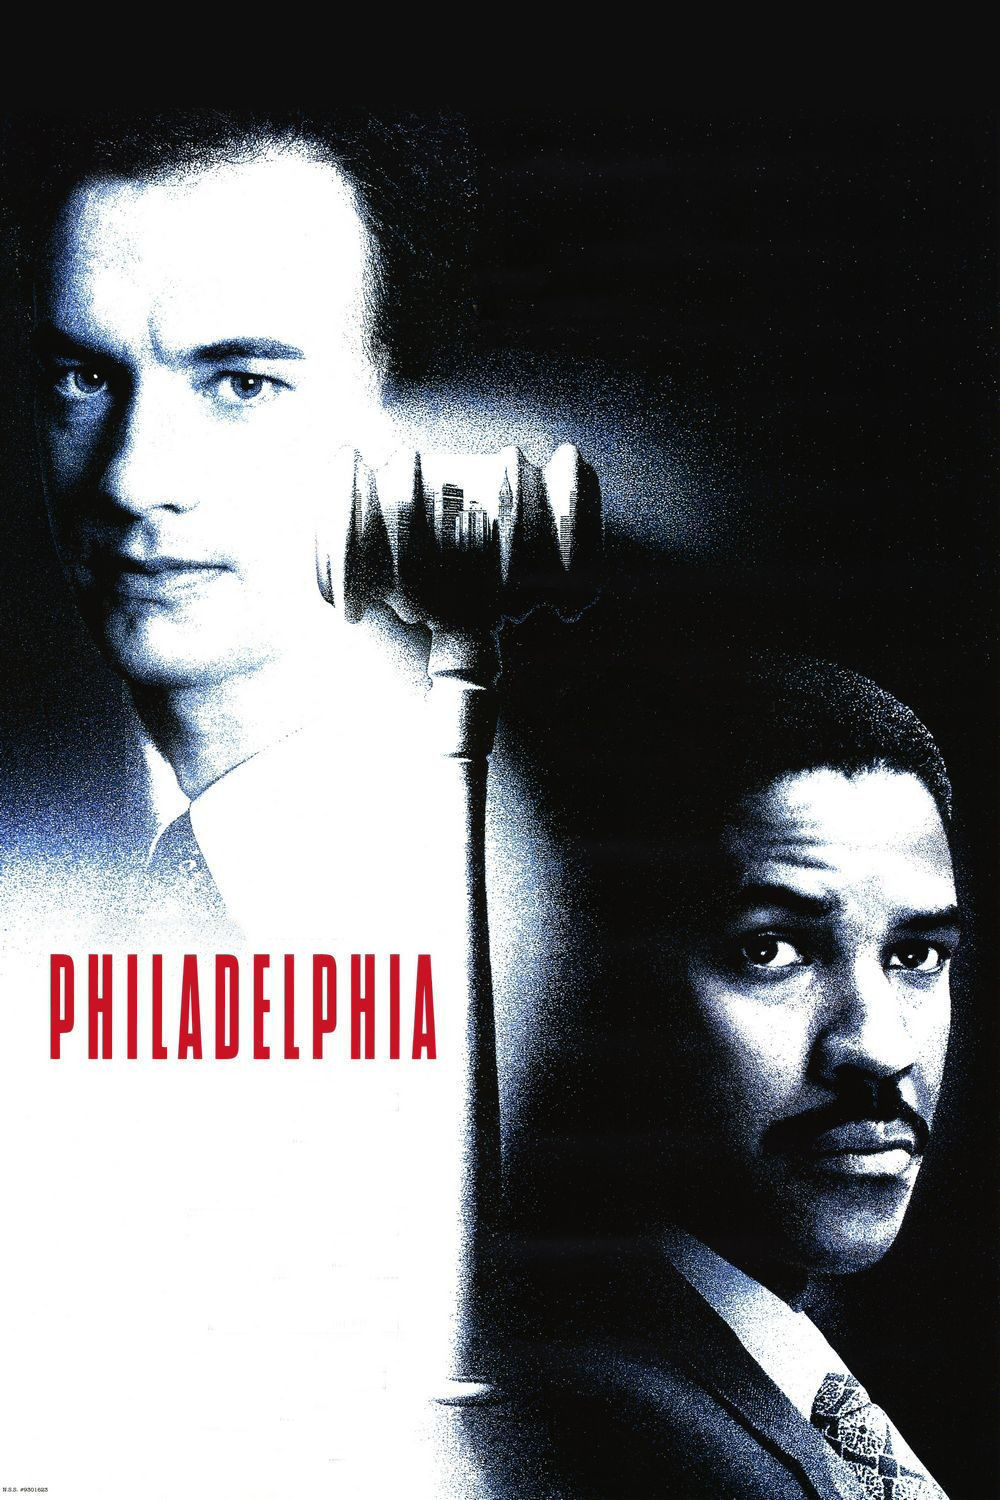 1993 Philadelphia movie poster